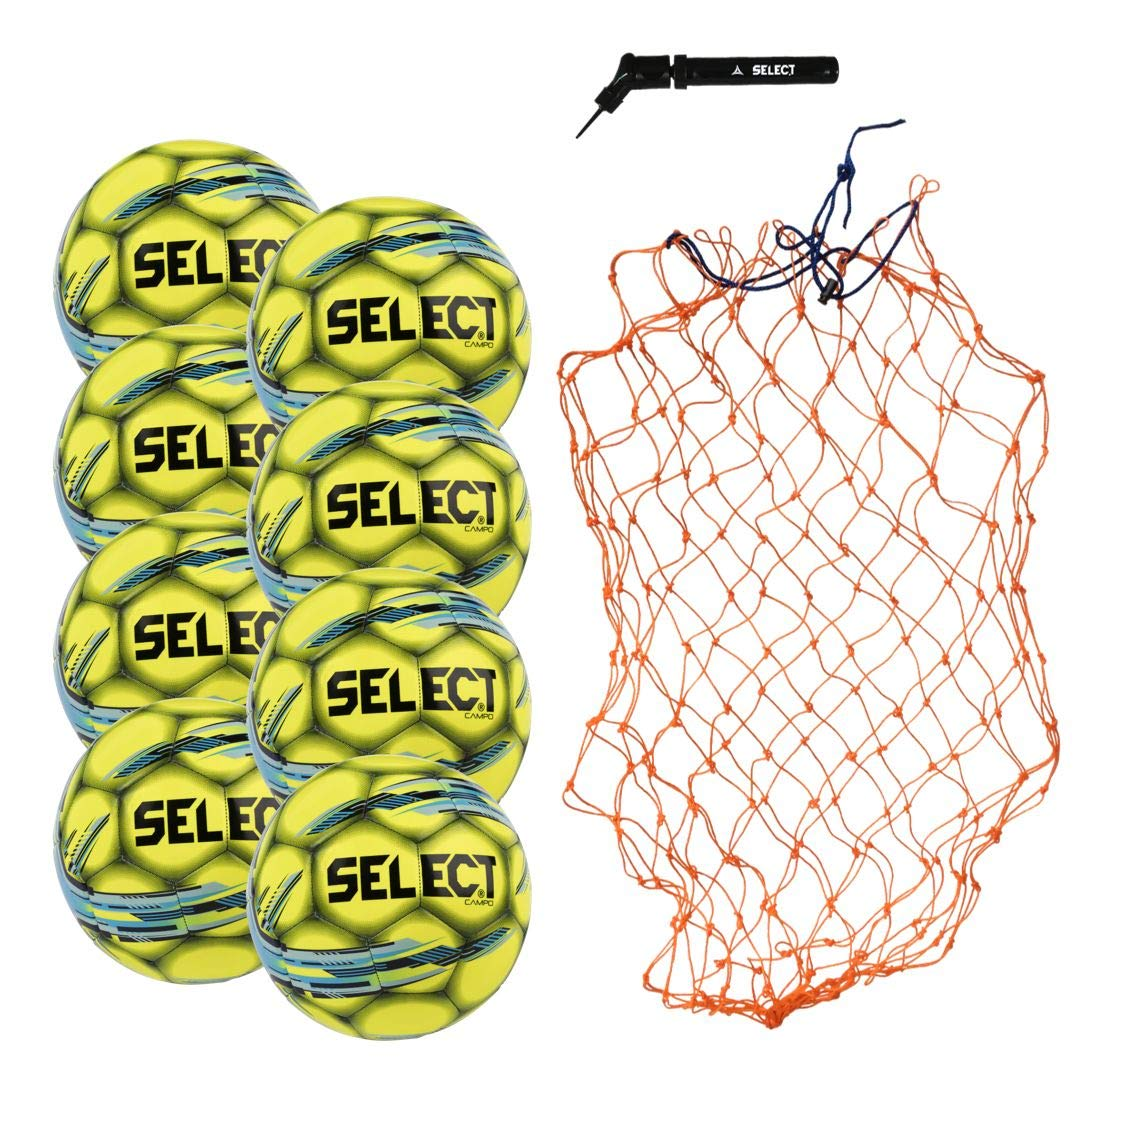 Select Campo Soccer Ball Package - Pack of 8 Soccer Balls with Ball Net and Hand Pump, Yellow, 3